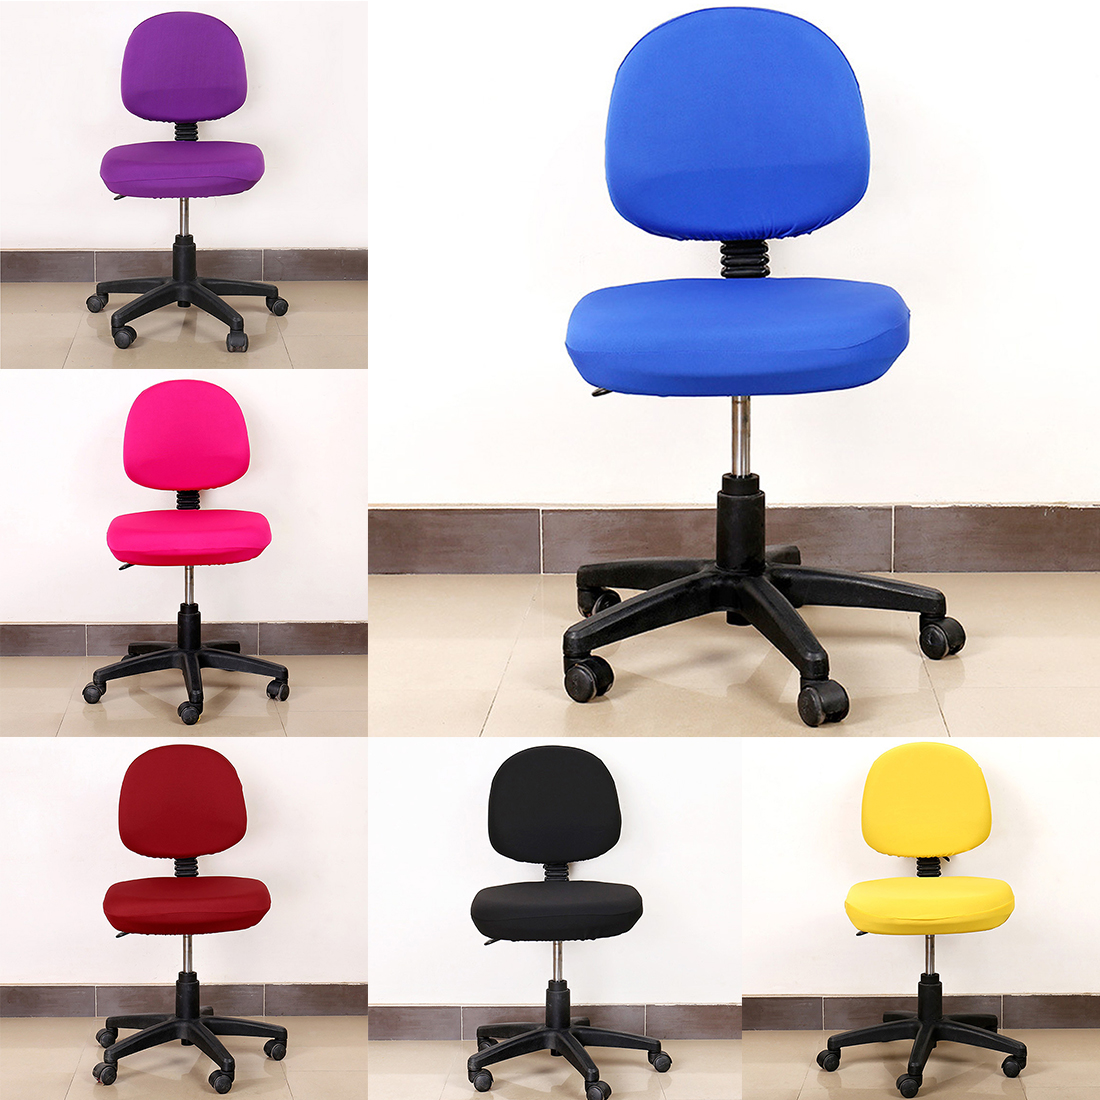 Elastic Spandex Stretch Furniture Covers For Computer Chairs Office